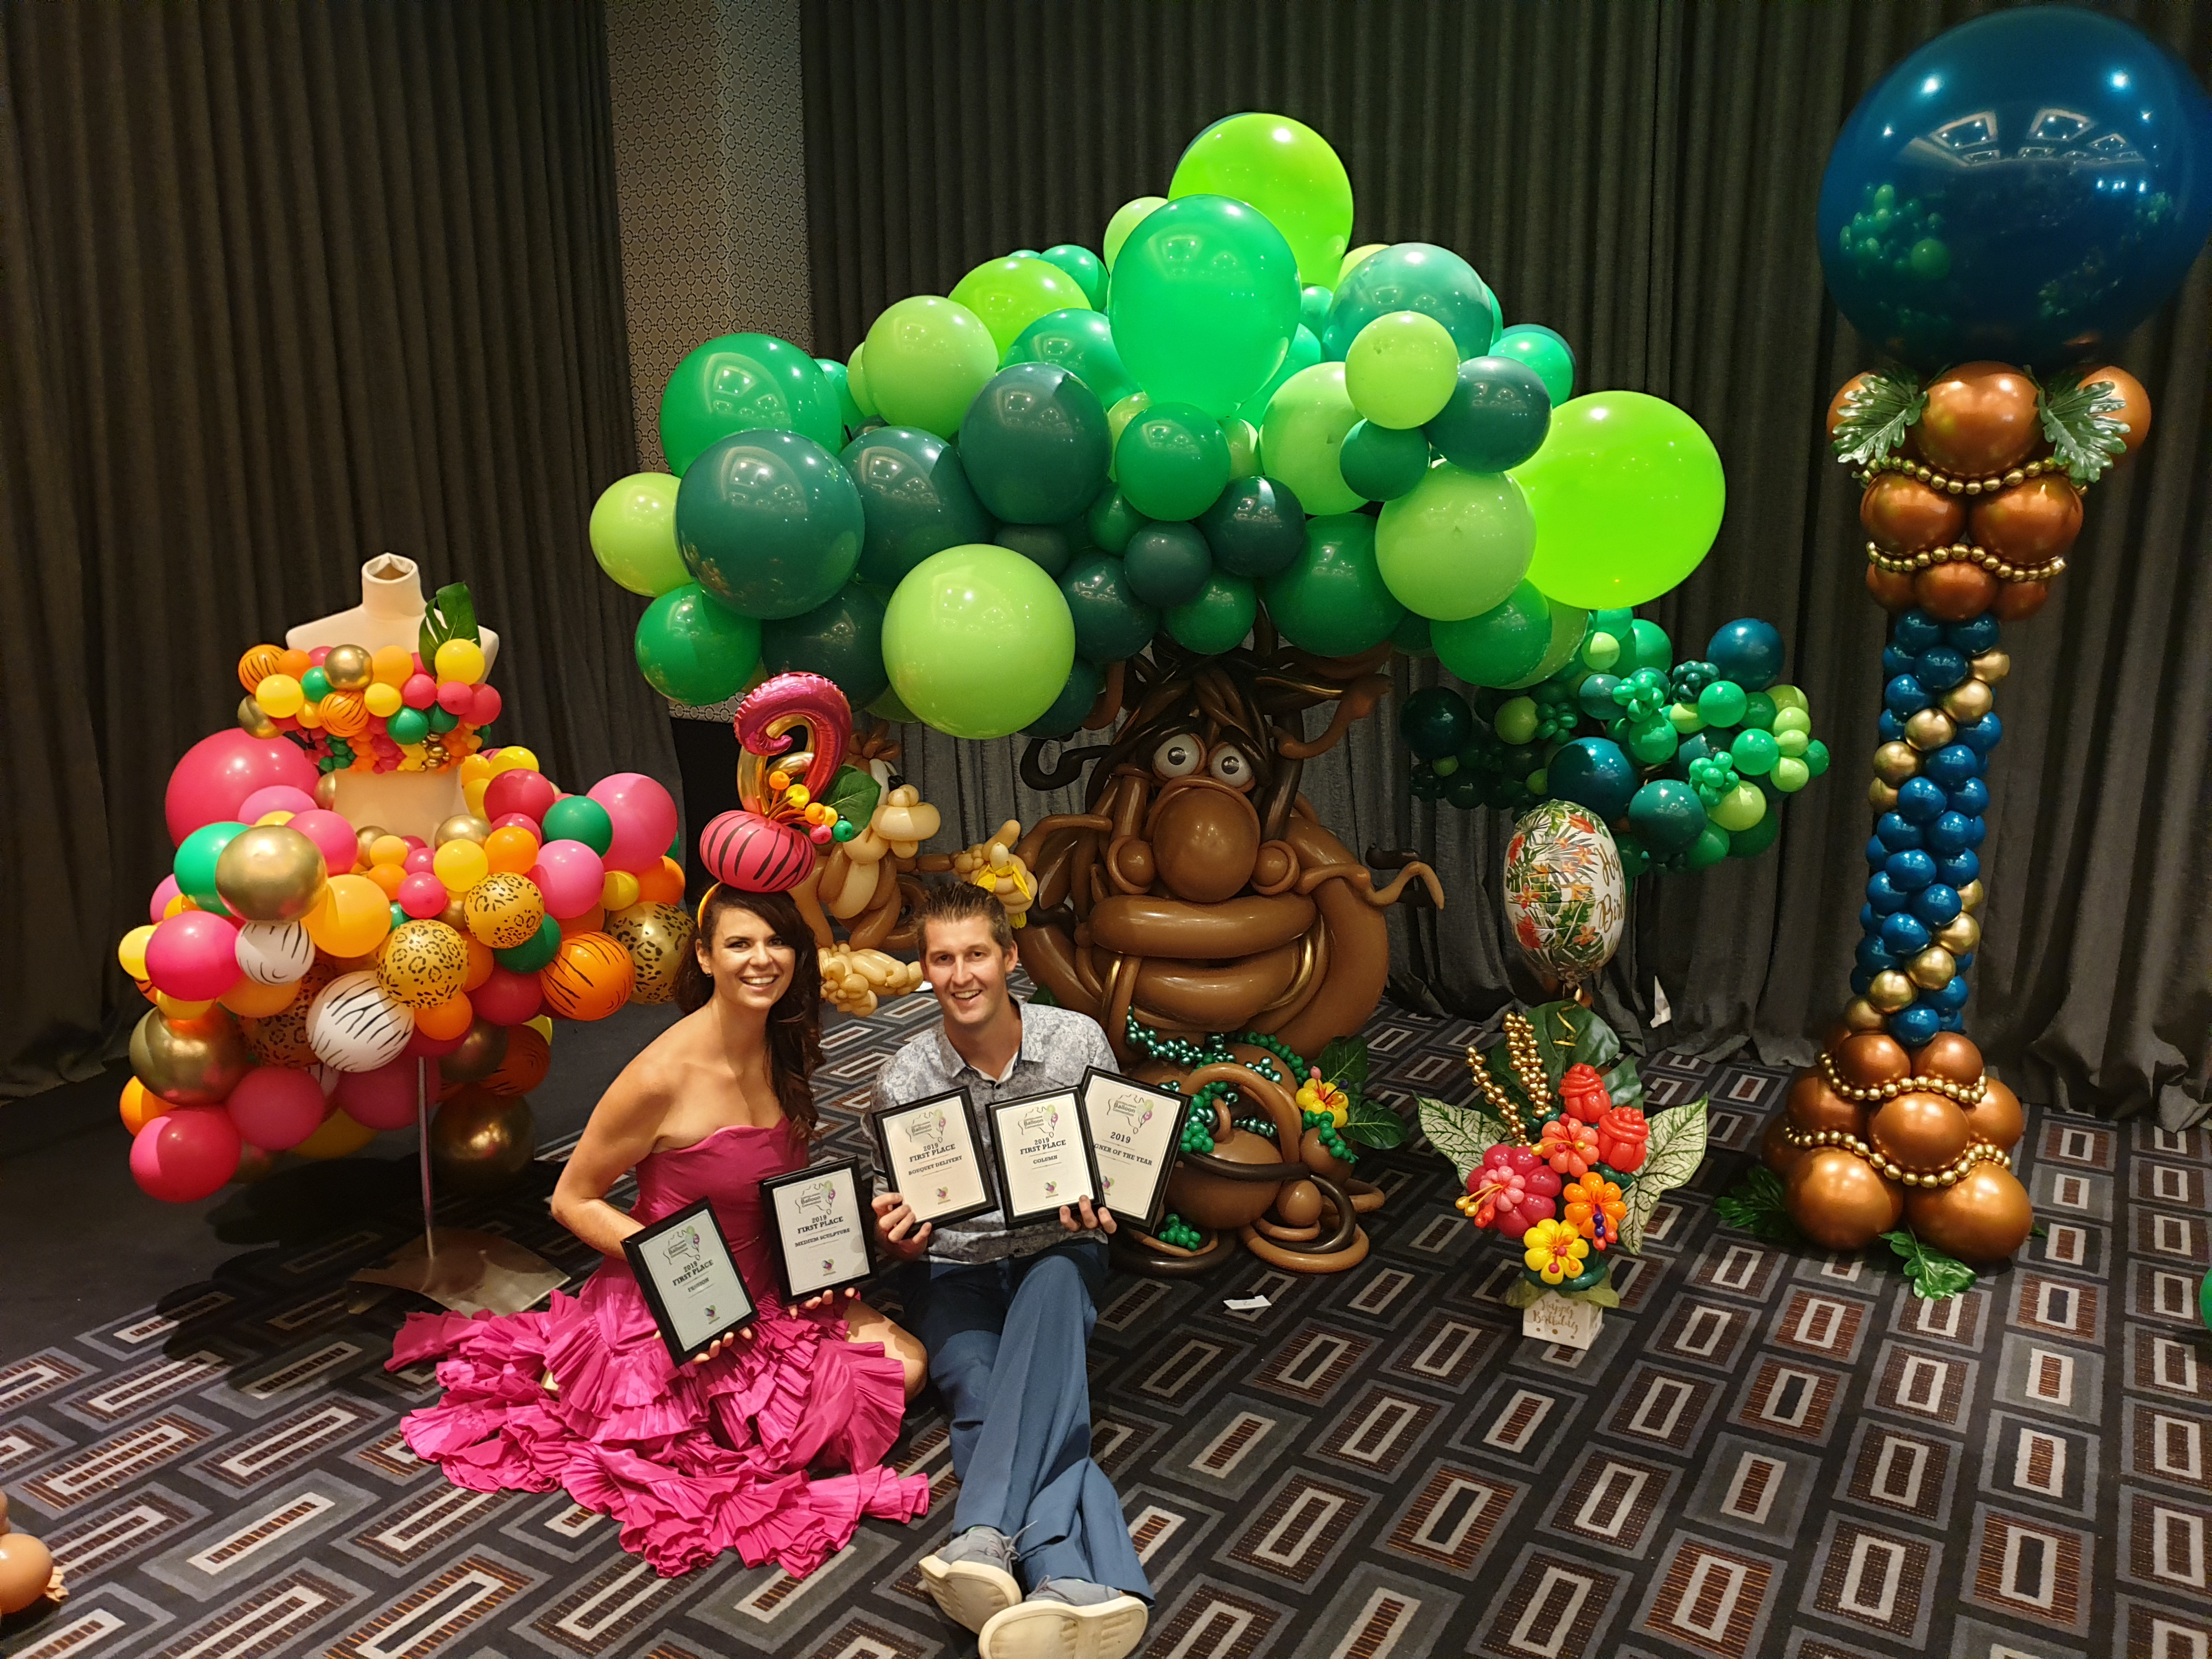 Competition Balloon Sculptures